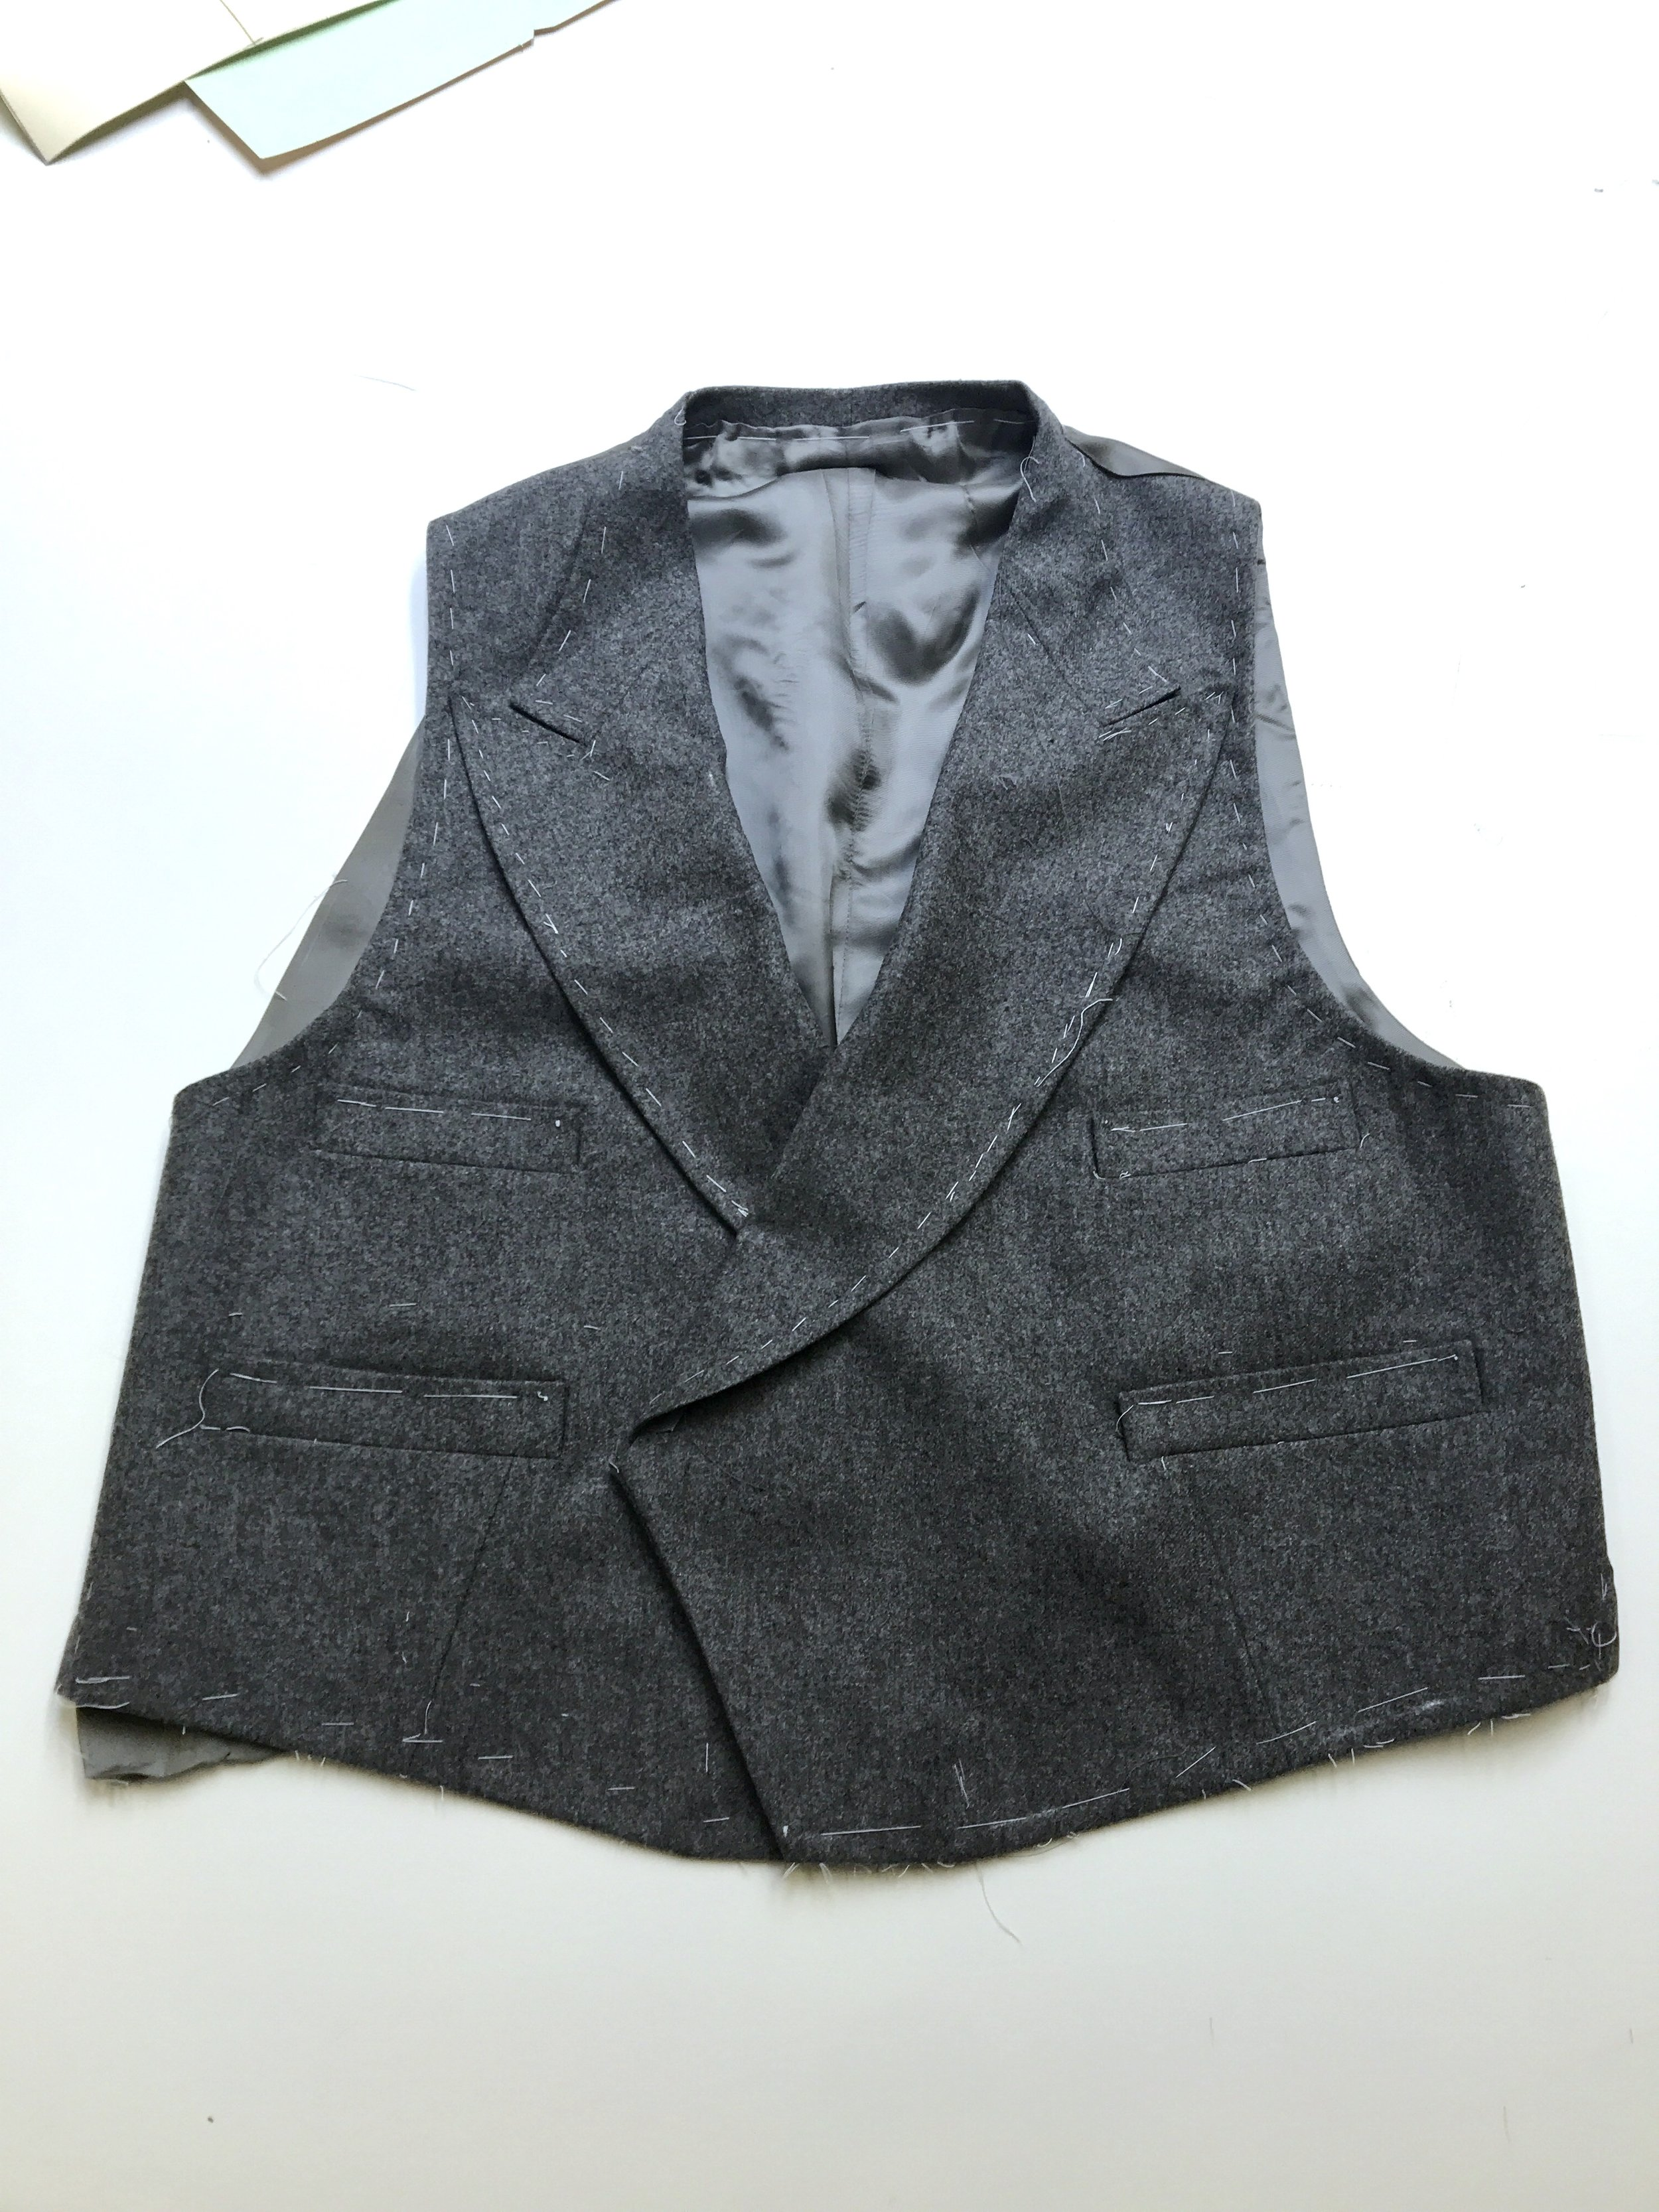 Crowley's bespoke double-breasted waistcoat, made on premises by our master tailor.